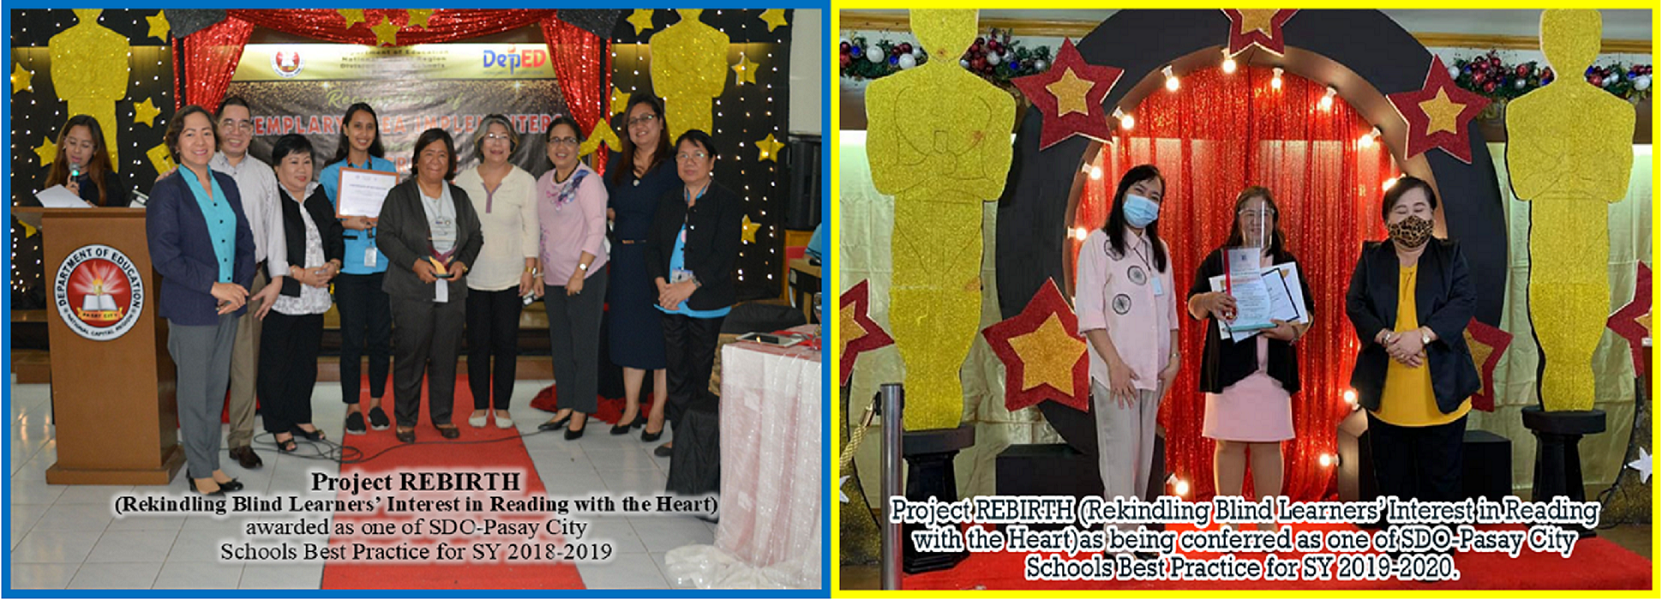 Awarding of Project REBIRTH as one of SDO-Pasay Best Practice for SY 2018-2019 and 2019-2020